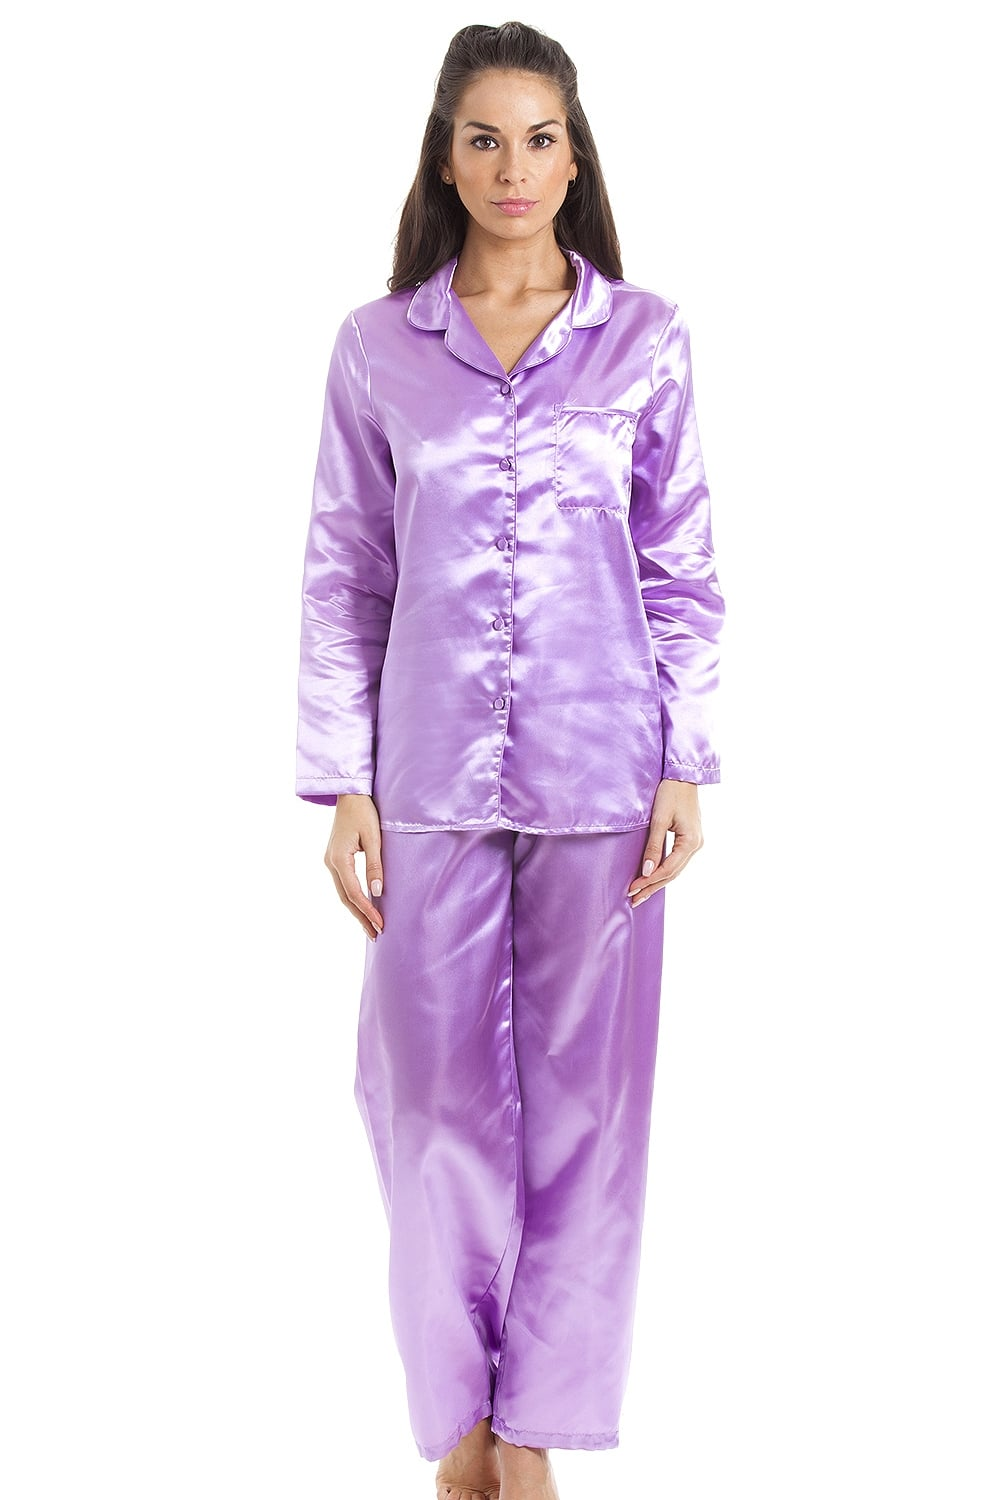 Satin Pajama Sets. invalid category id. Satin Pajama Sets. Showing 15 of 15 results that match your query. Search Product Result. Product - Laura Scott Women Gray Satin Trim Pajamas Lightweight Short Sleeve Pajama Set. Product Image. Price $ .